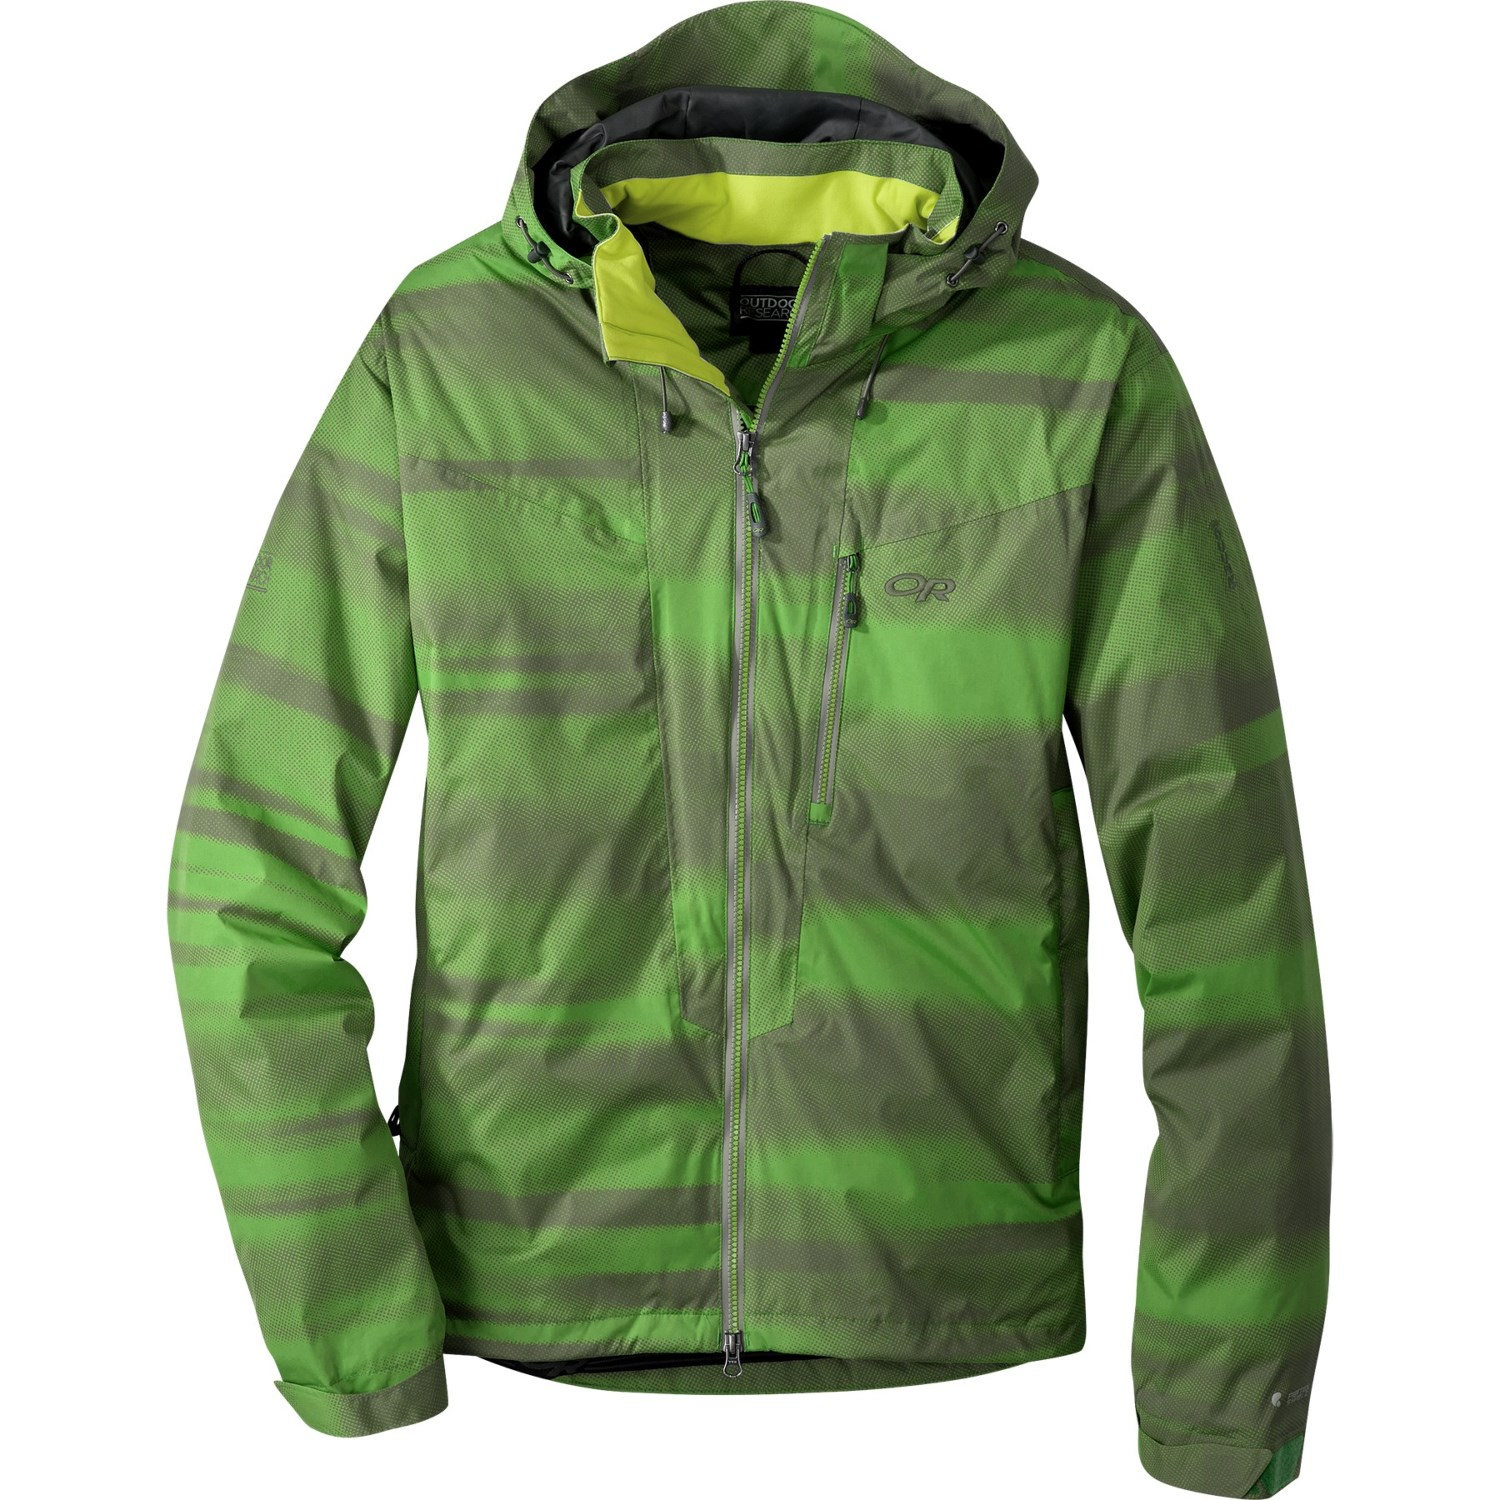 Outdoor Research Igneo Jacket For Men Save 74